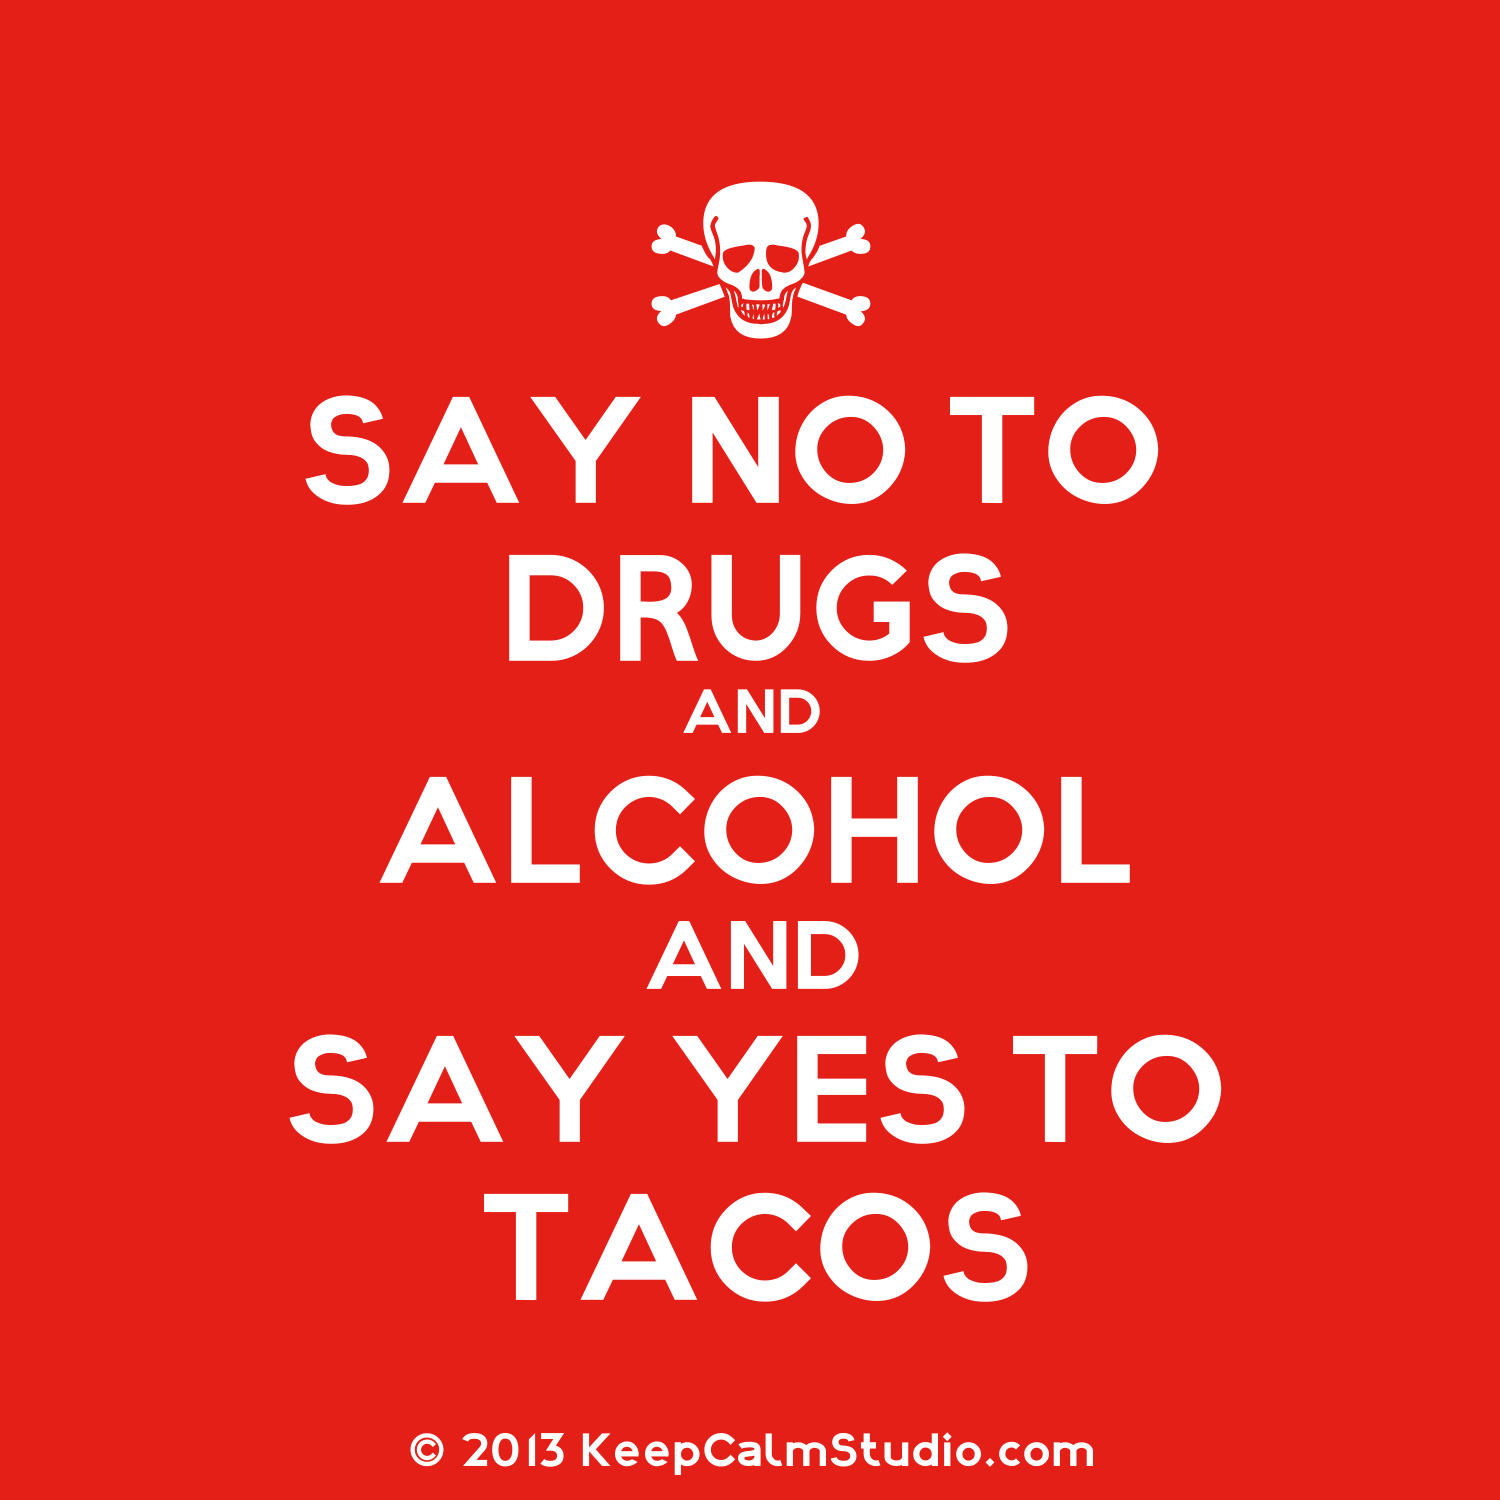 Just Say No To Drugs Slogans